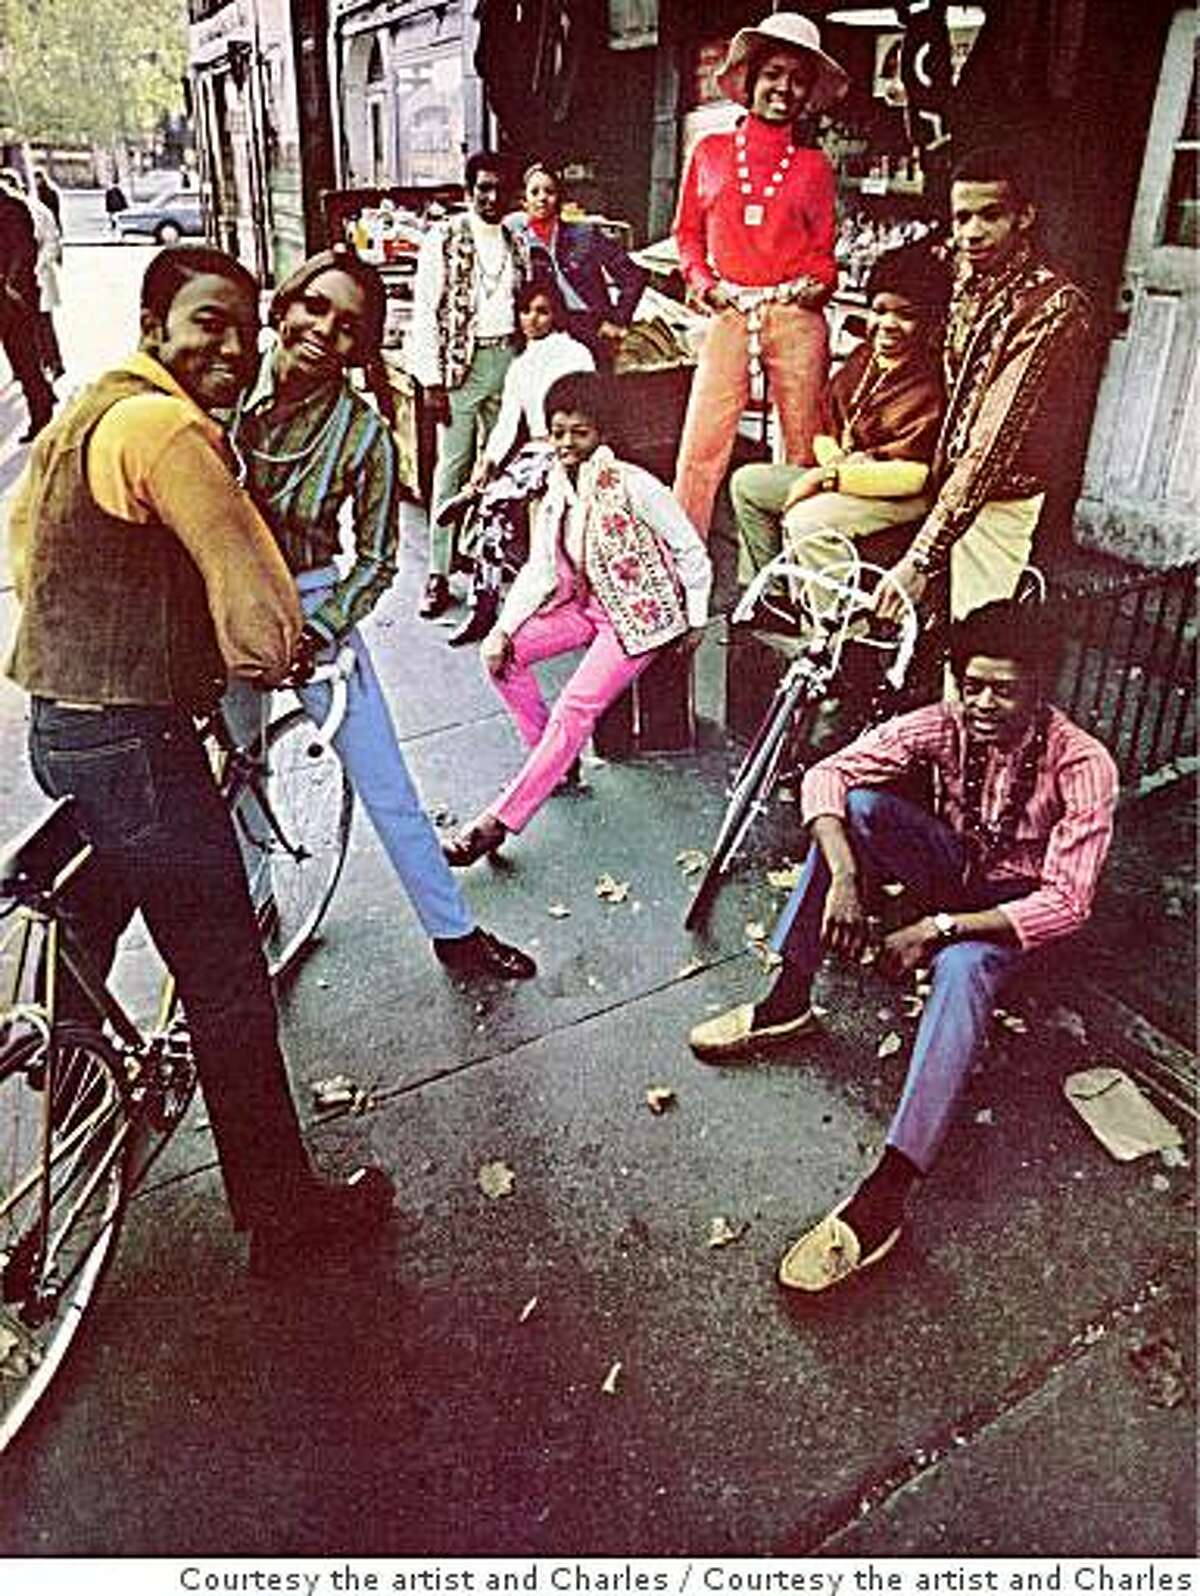 Hank Willis ThomasThe Oft Forgotten Flower Children of Harlem 1969/2006from the series Unbranded: Reflections in Black by Corporate AmericaLightJet print, 34 by 27�? in., (86.4 by 69.9 cm.)Courtesy the artist and Charles Guice Contemporary